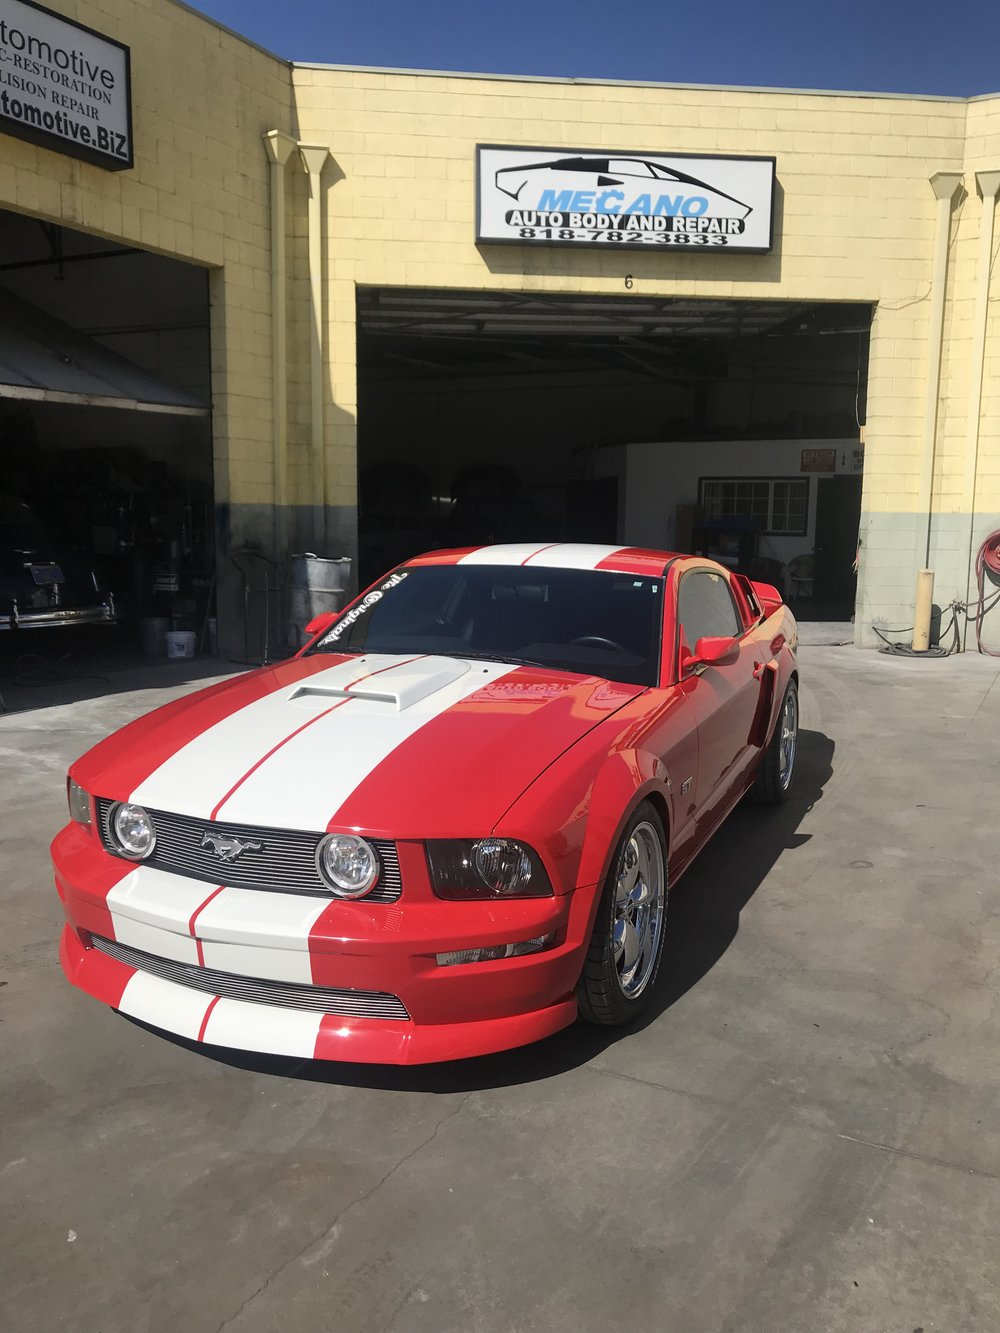 Full Paint Job and Custom Stripes, 2005 Ford Mustang